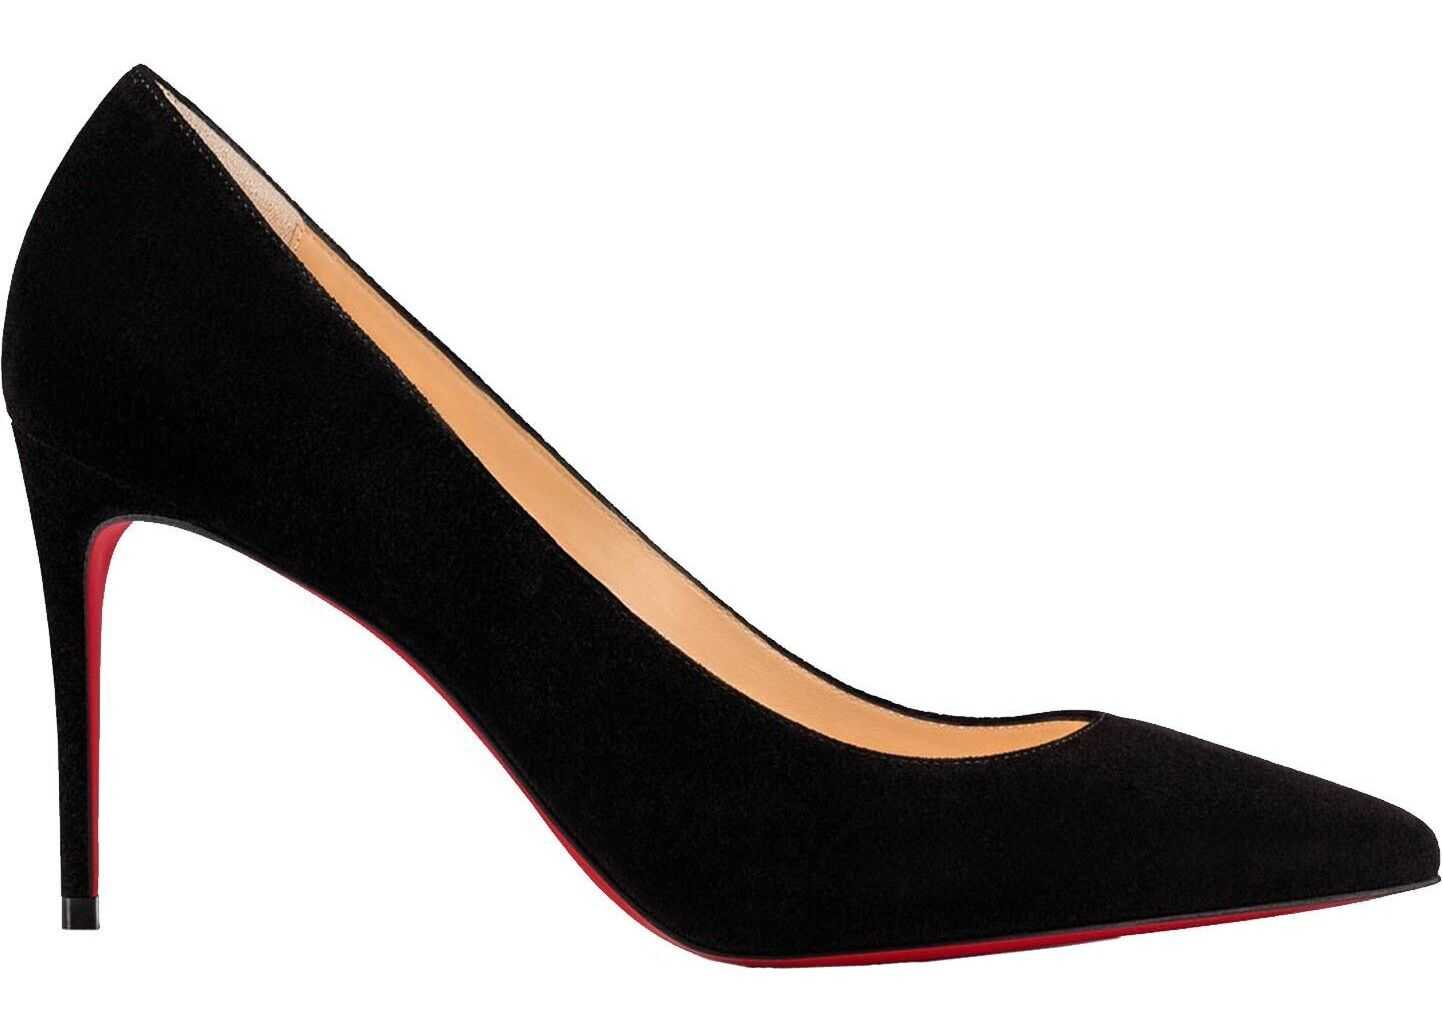 Christian Louboutin Leather Pumps BLACK